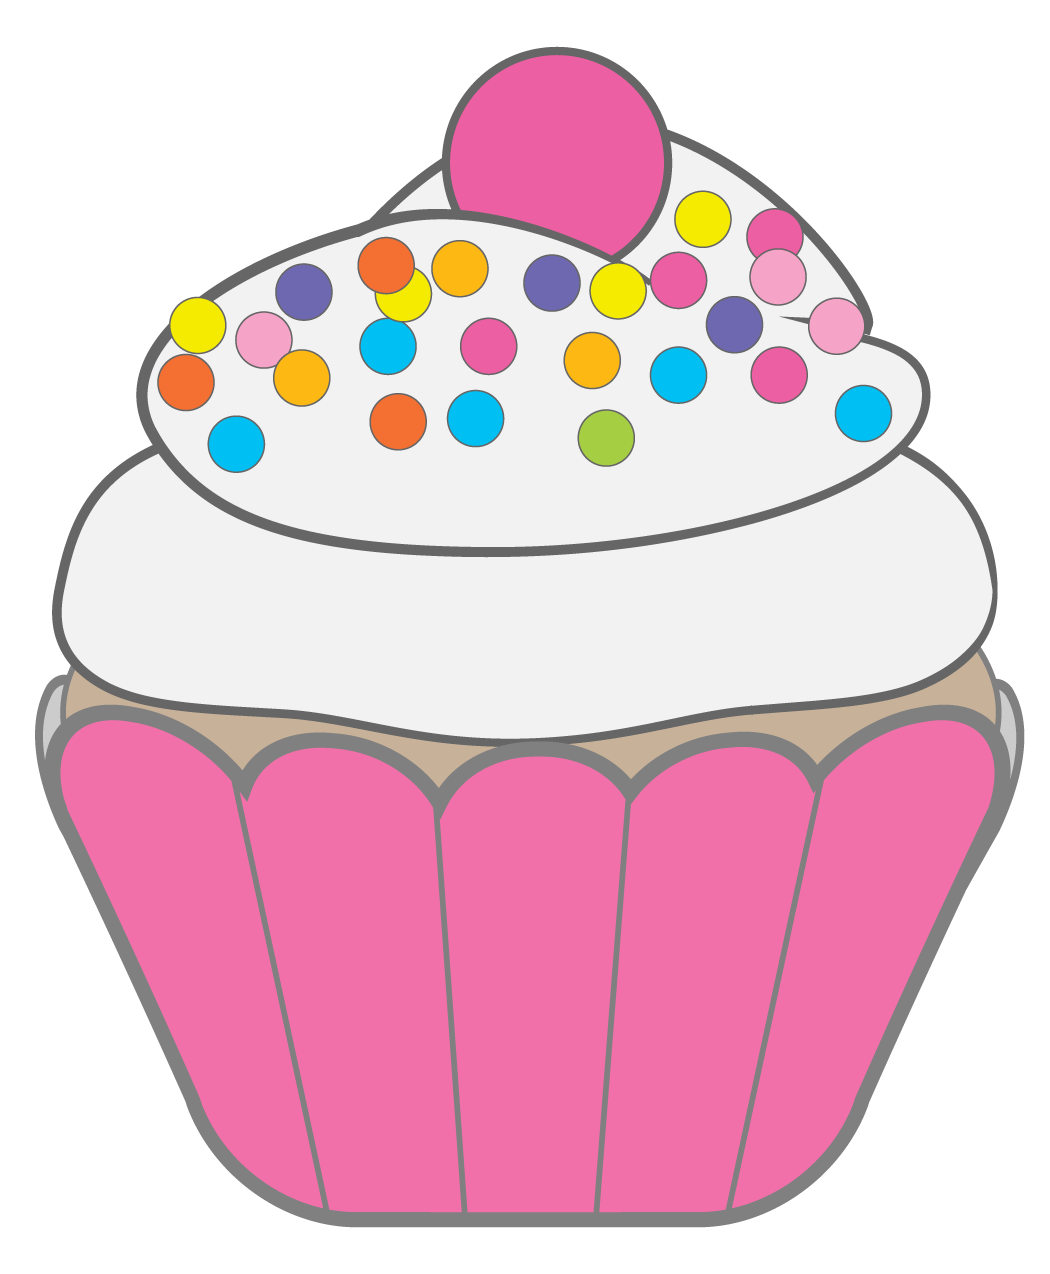 Cupcake Clipart Png Cupcake Png Clipart Best